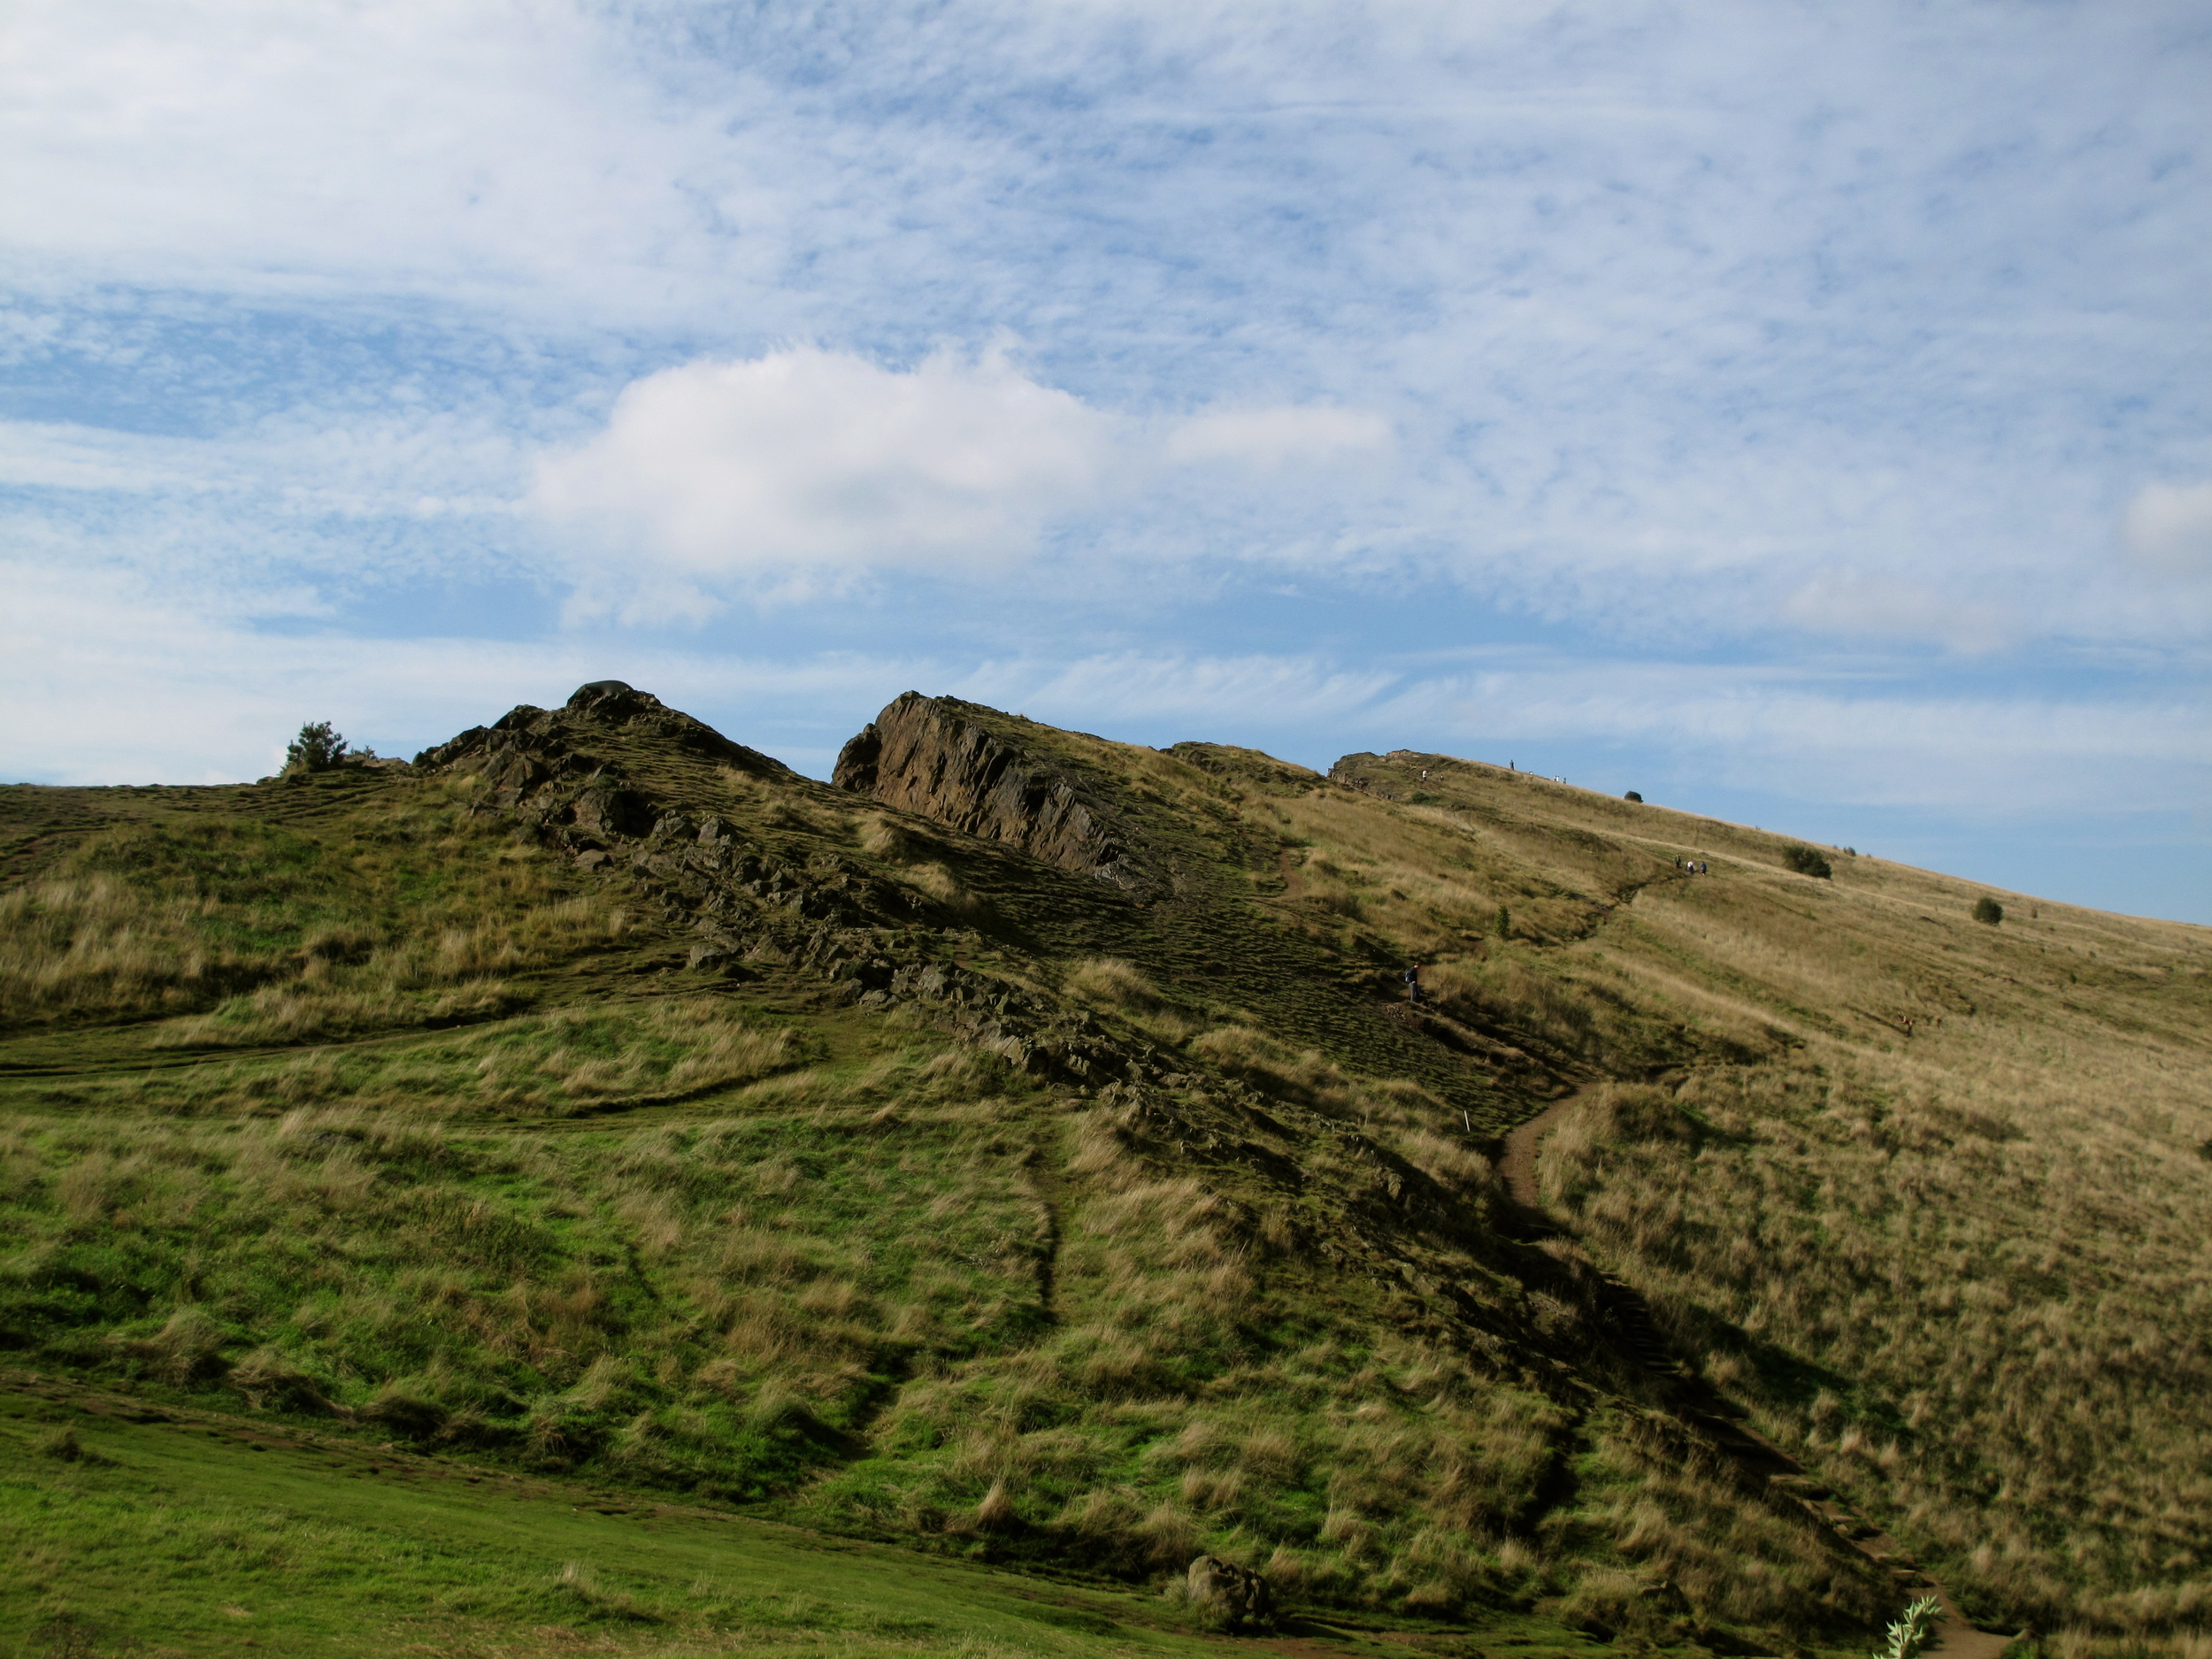 Holyrood park - a wild hilly place on the outskirts of Edinburgh